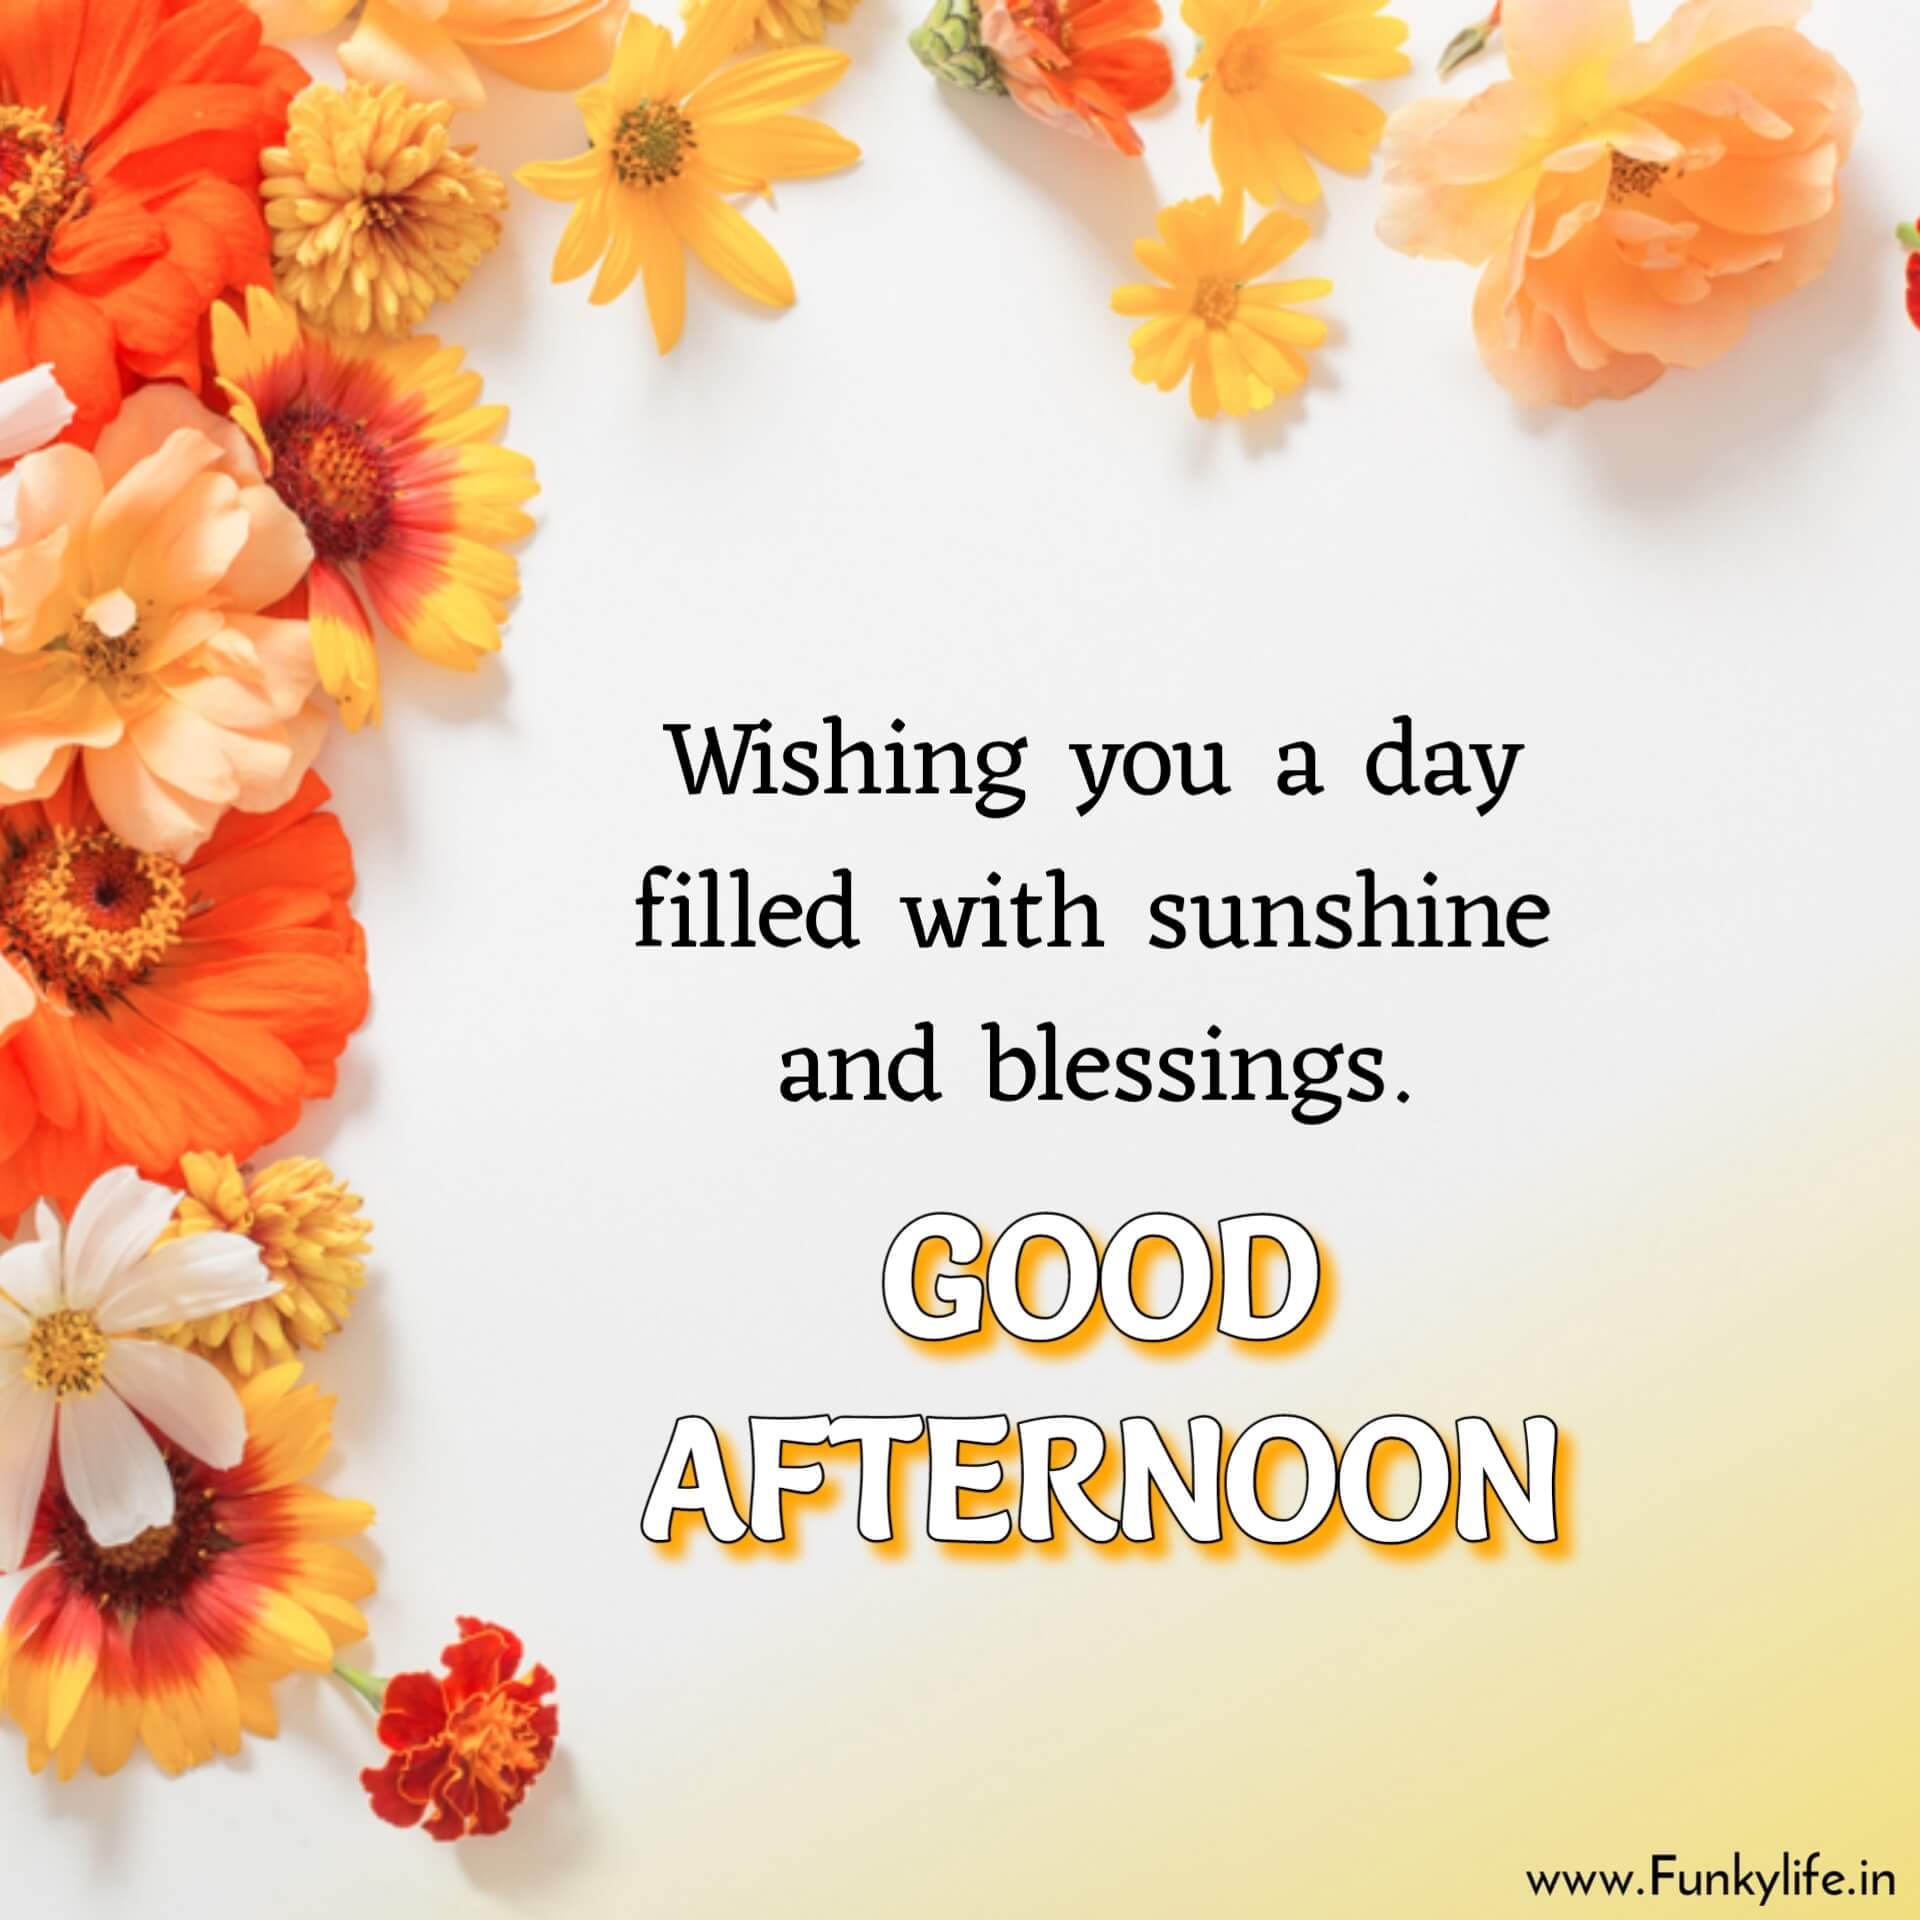 Good Afternoon Wishes Images with Quotes